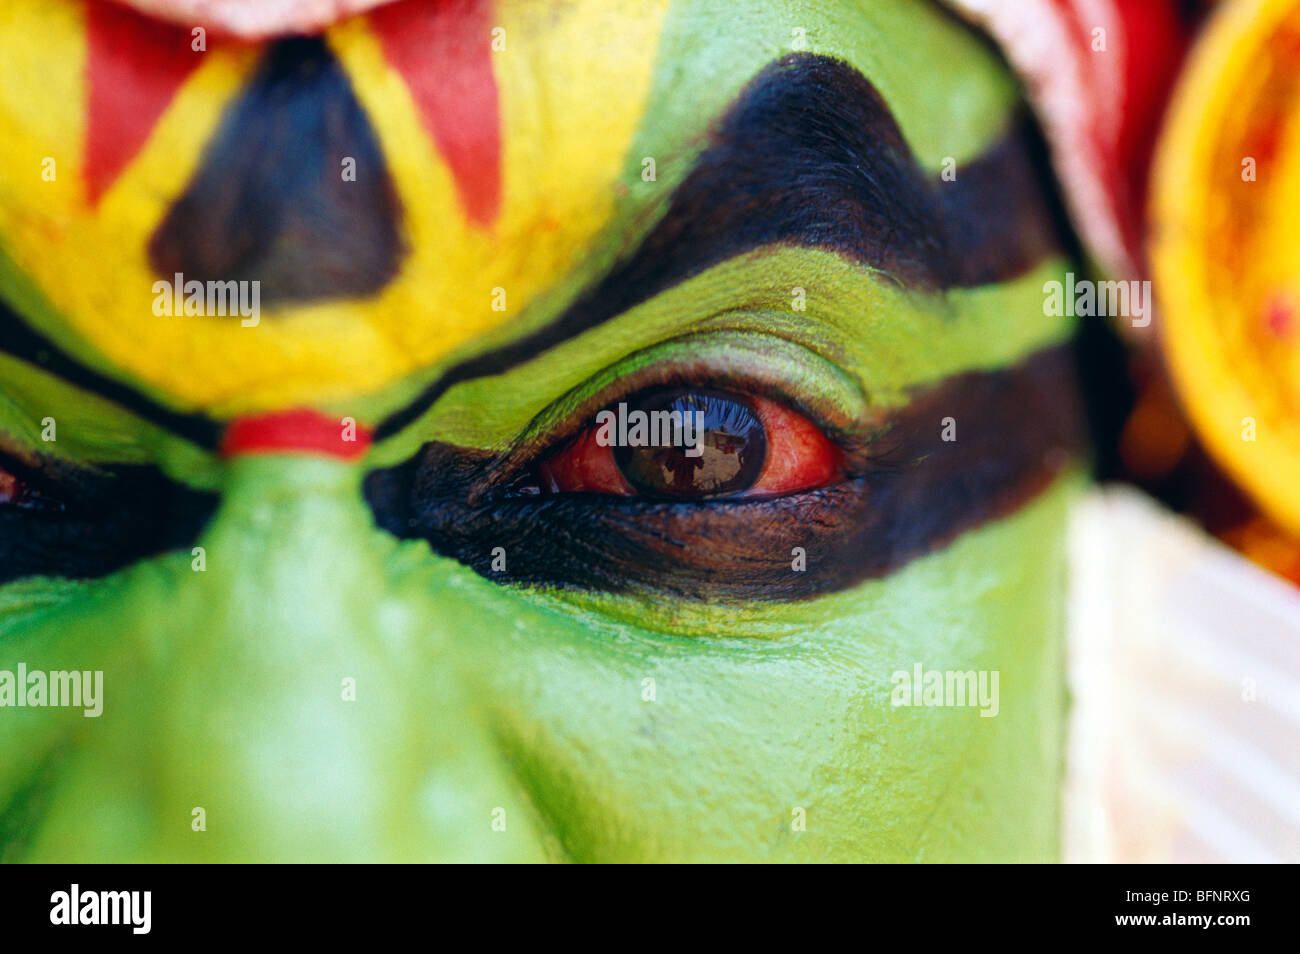 RSC 60564 : Kathakali dancer ; Kerala ; India Signor#306 Foto Stock